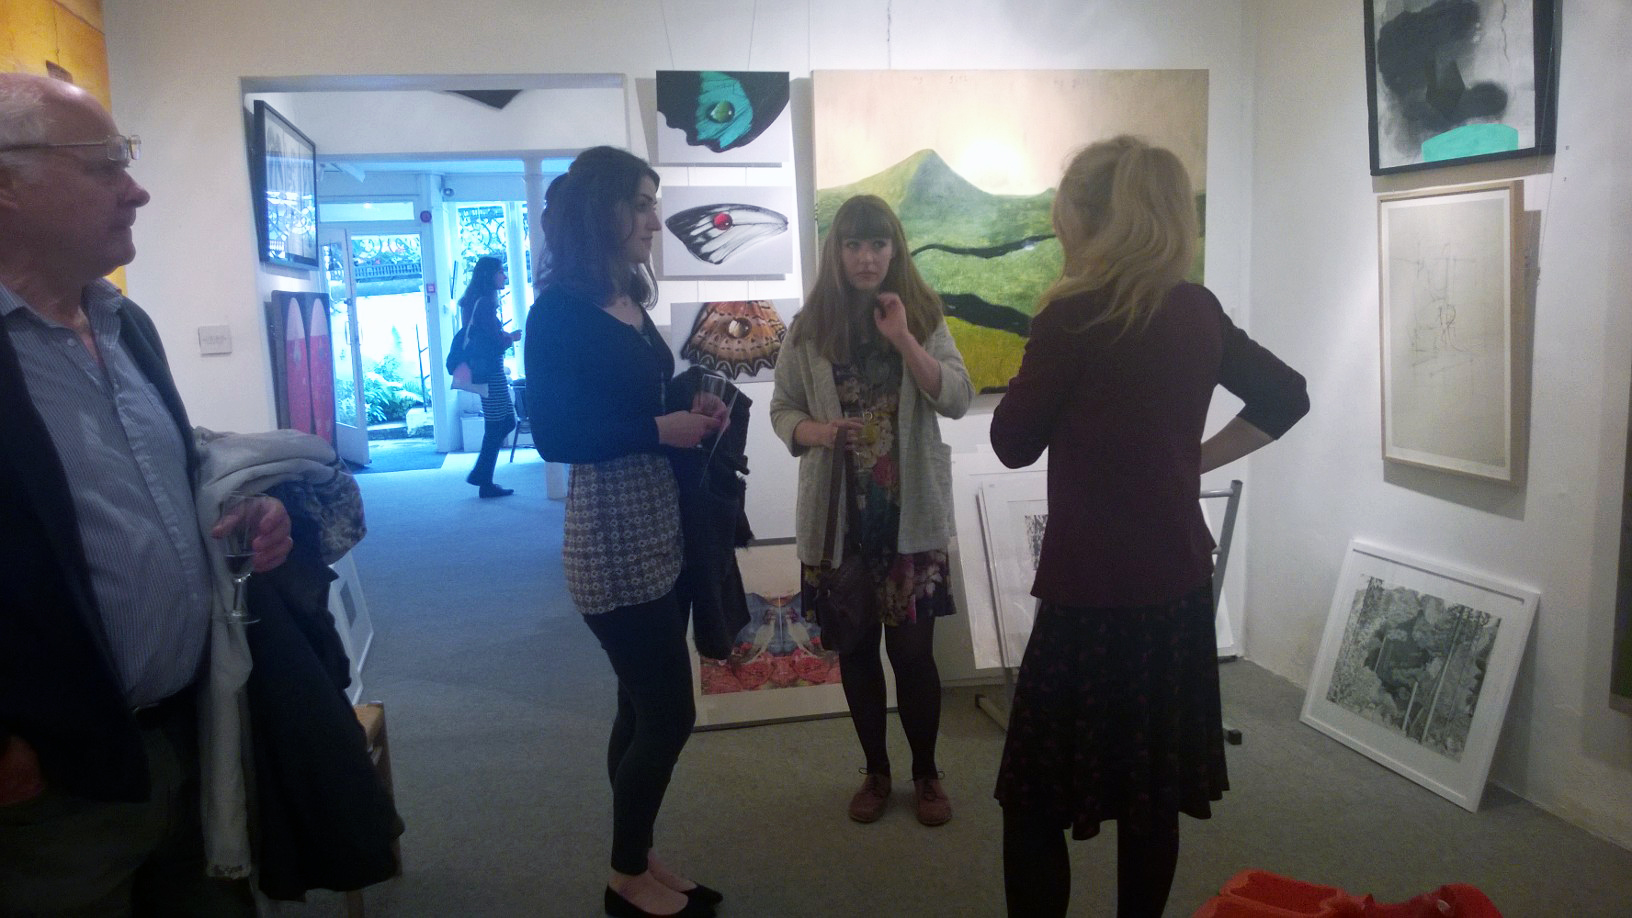 A peek at the show and some of the artists involved!